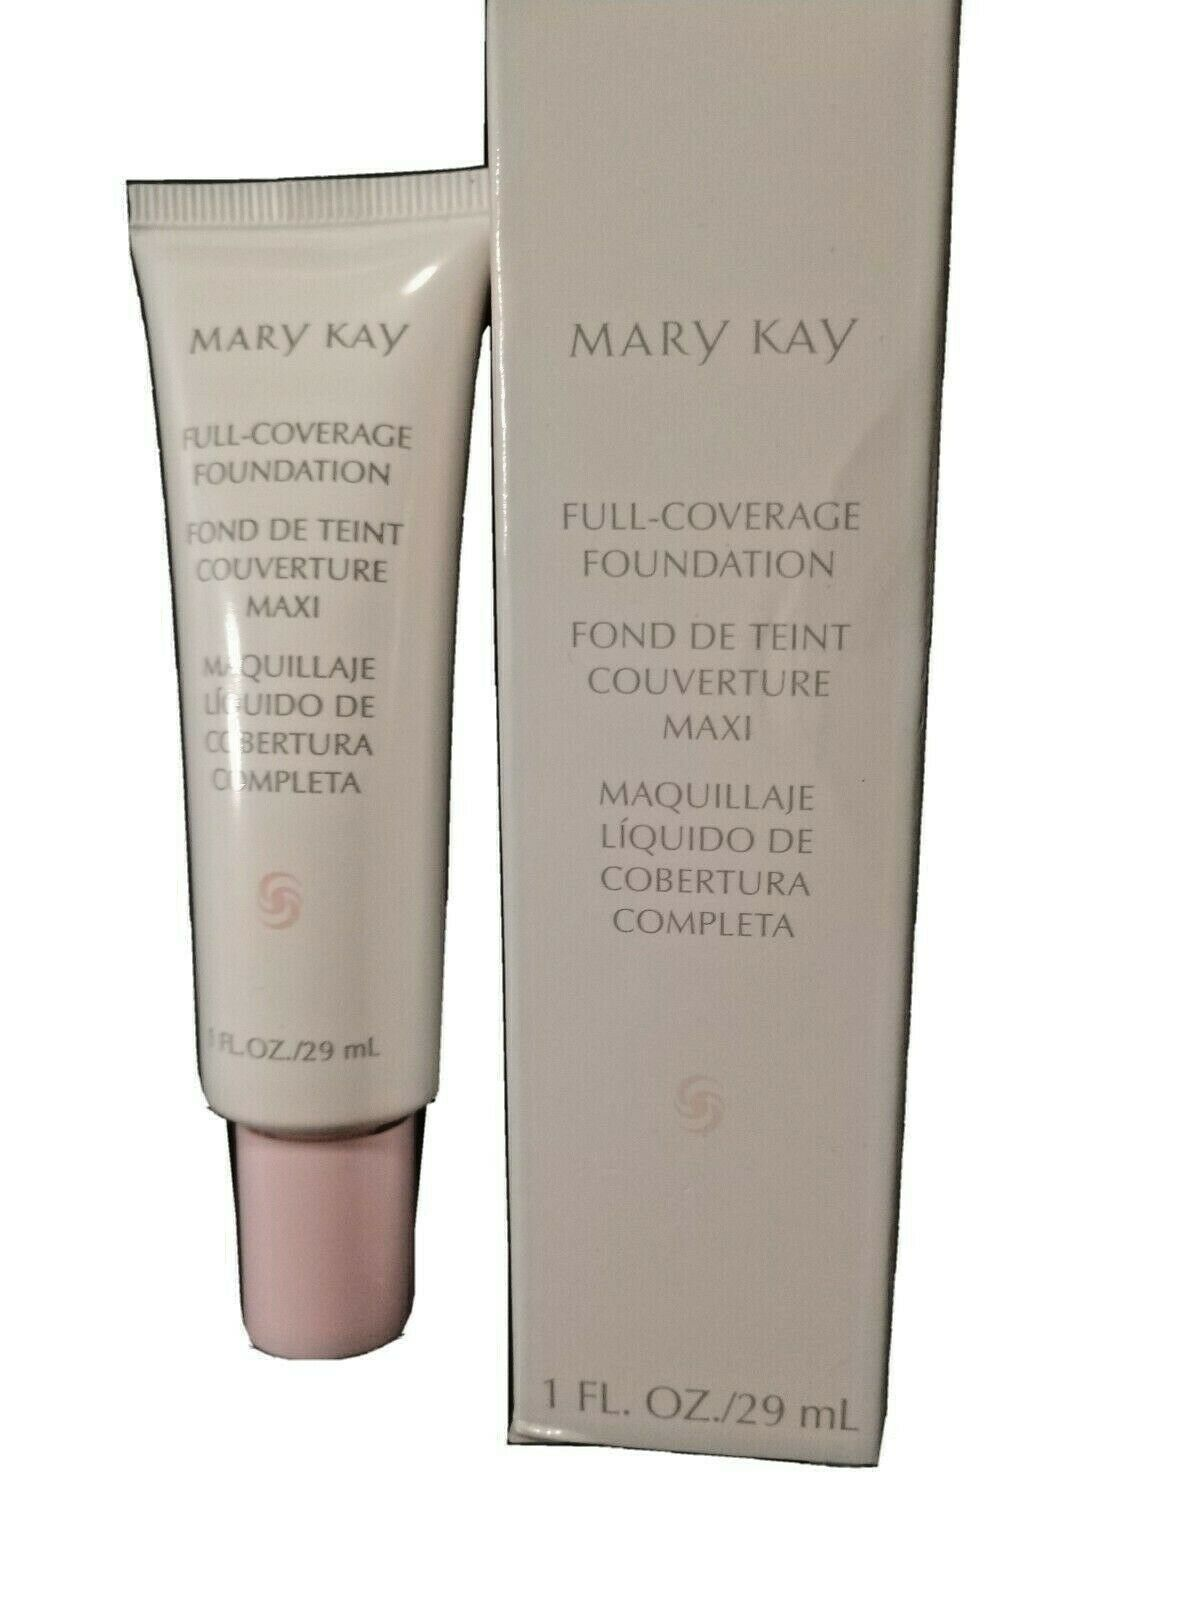 Mary Kay Full Coverage Foundation 2 Customer Reviews And 29 Listings